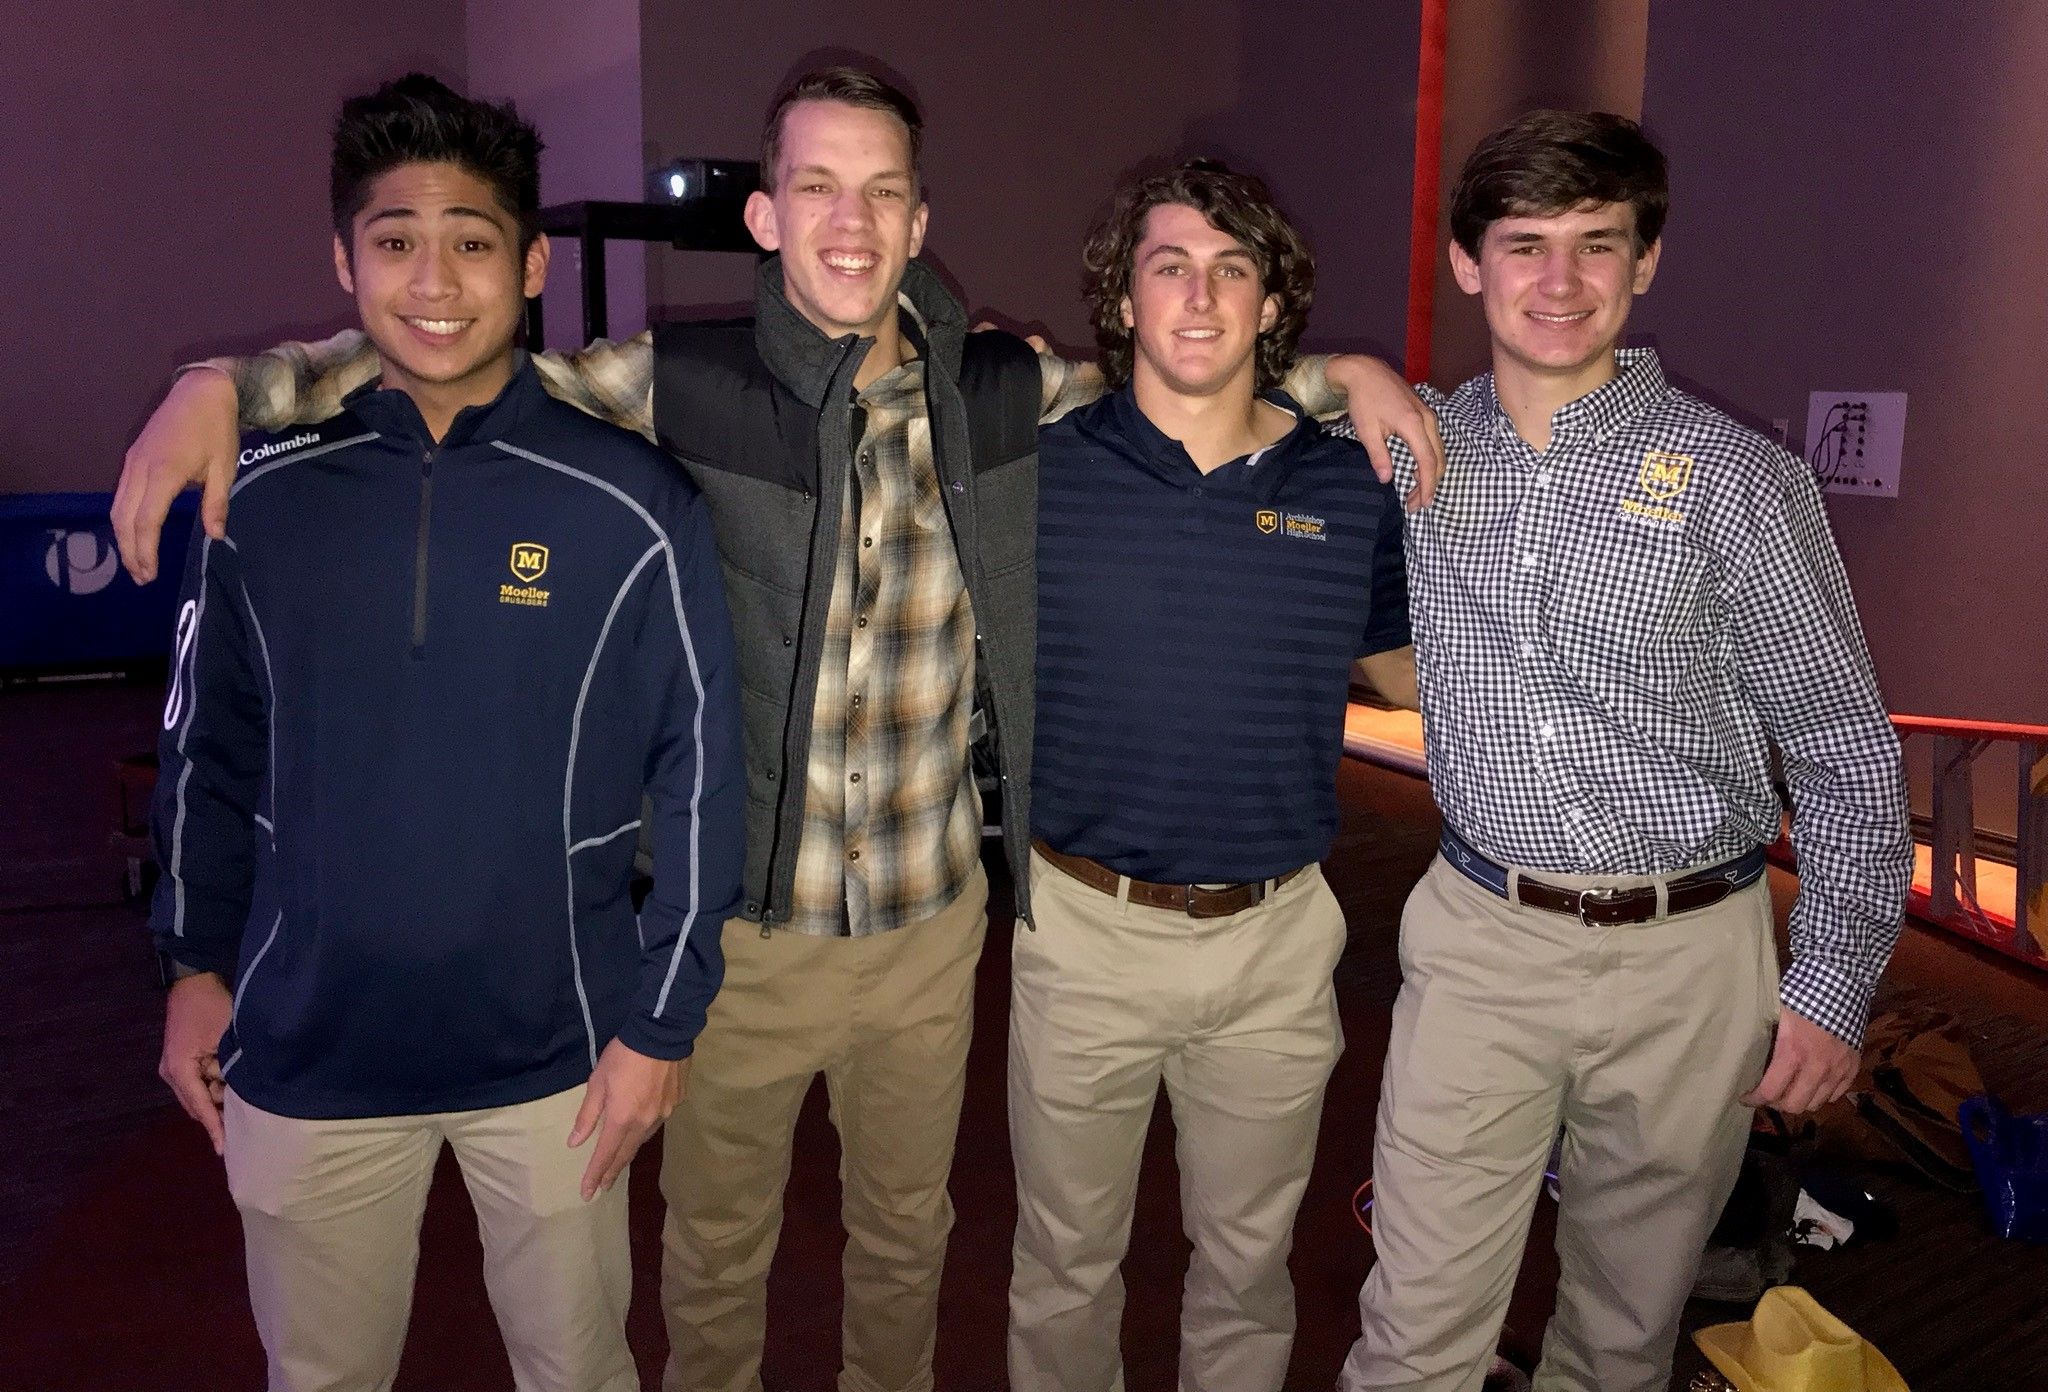 From Left to Right: seniors Andy Garcia, Mitchel McKenzie, Joseph Craft, and Adam Shimala at the fashion show  Photo Creds: Meghan Shimala